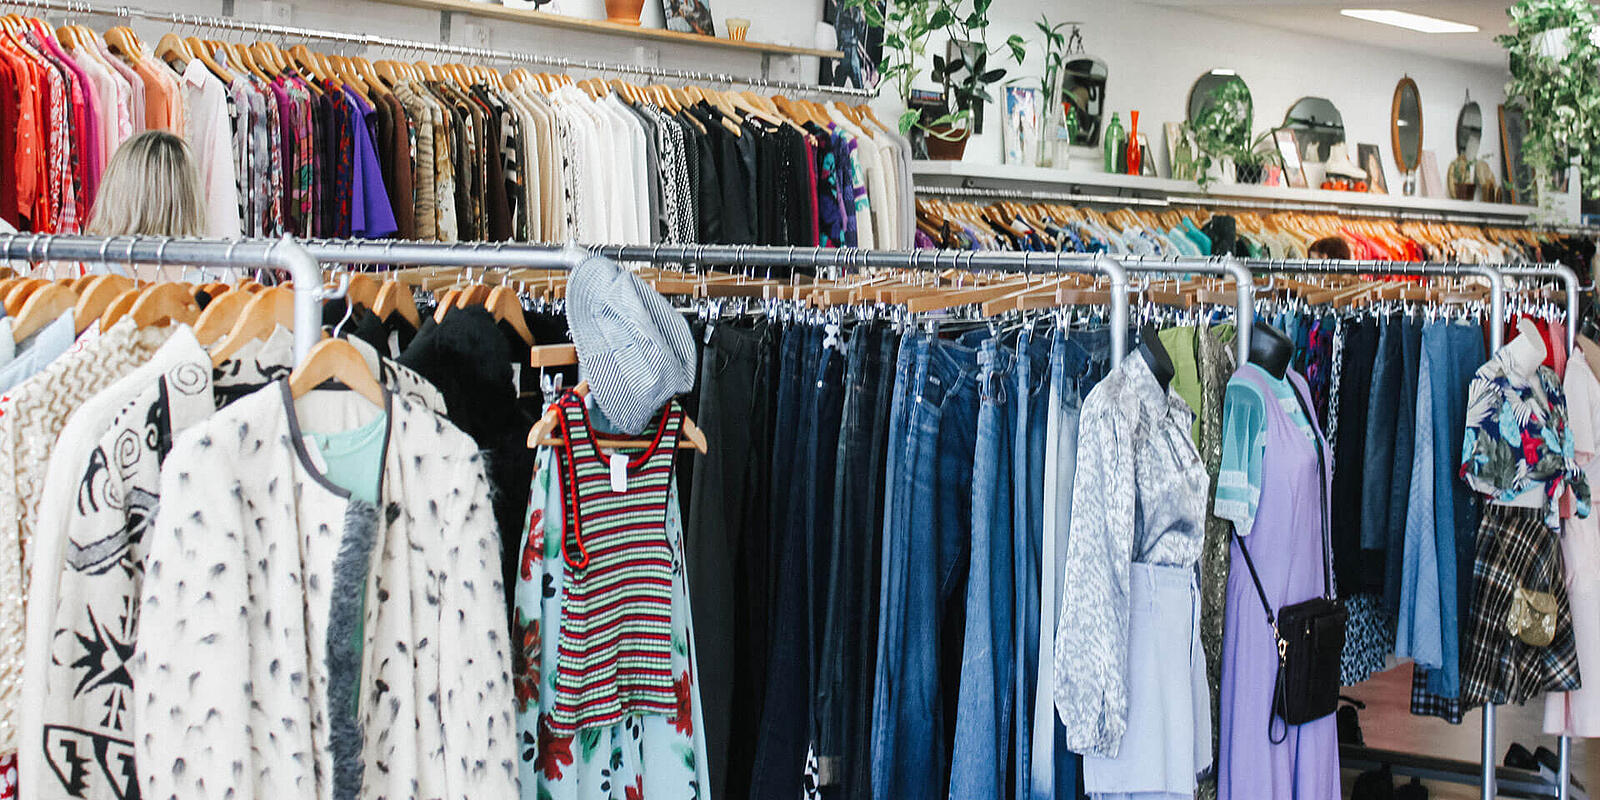 Charity stores: understand your customers to build brand awareness and loyalty